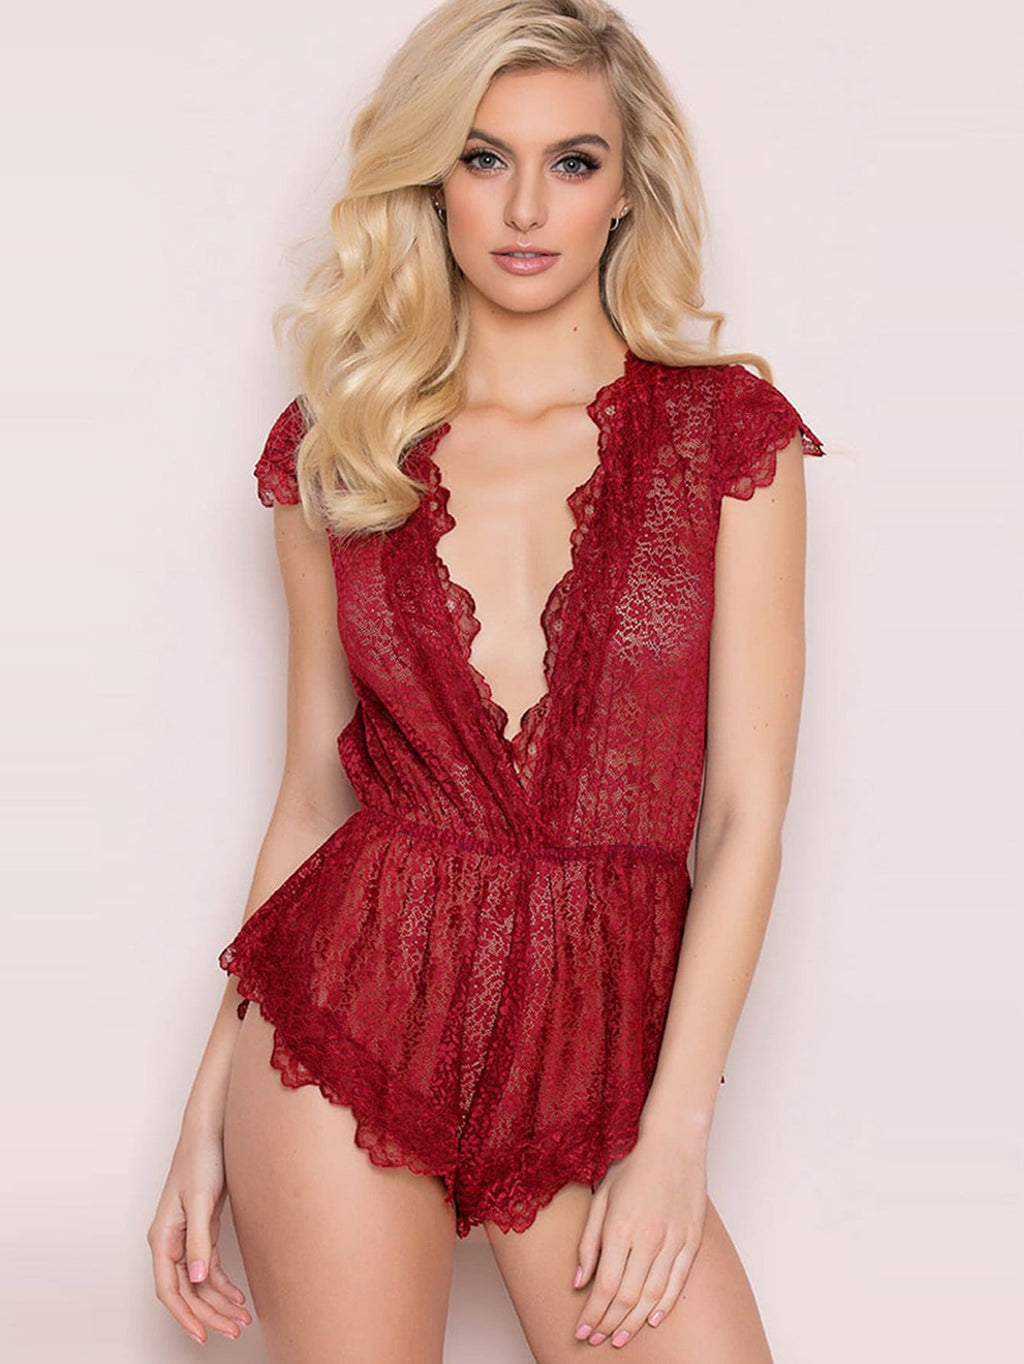 Lace Teddy Bodysuit - Red